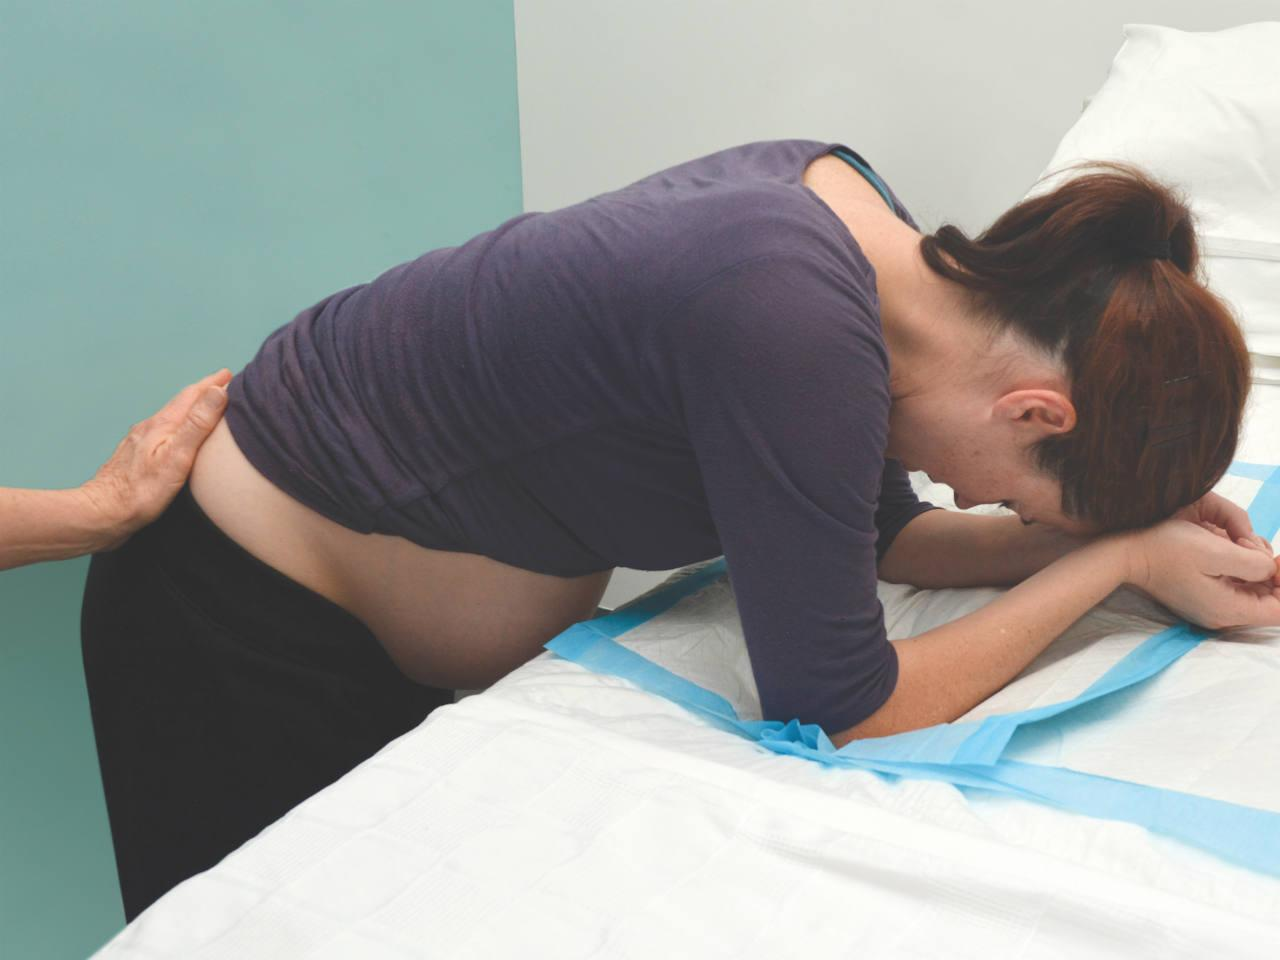 hip pain during pregnancy image